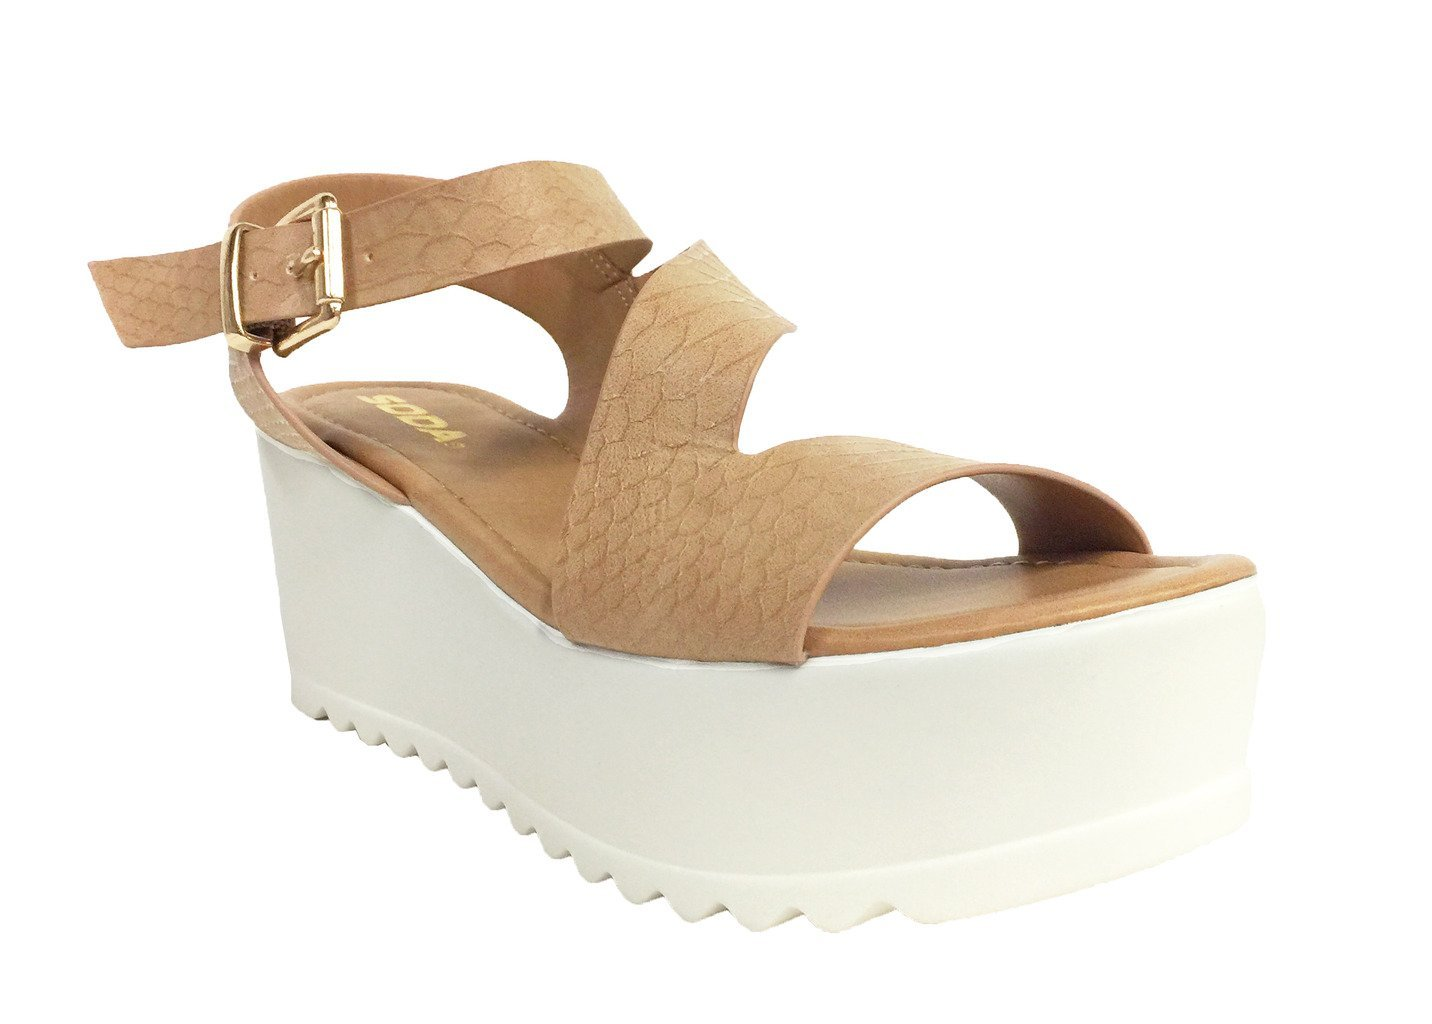 UNVEIL! Women's Open Toe Retro Cross Strap Lug Sole Platform B(M) Wedge Sandals B01GP5D550 7.5 B(M) Platform US|Tan Snake Leatherette 57a6ce